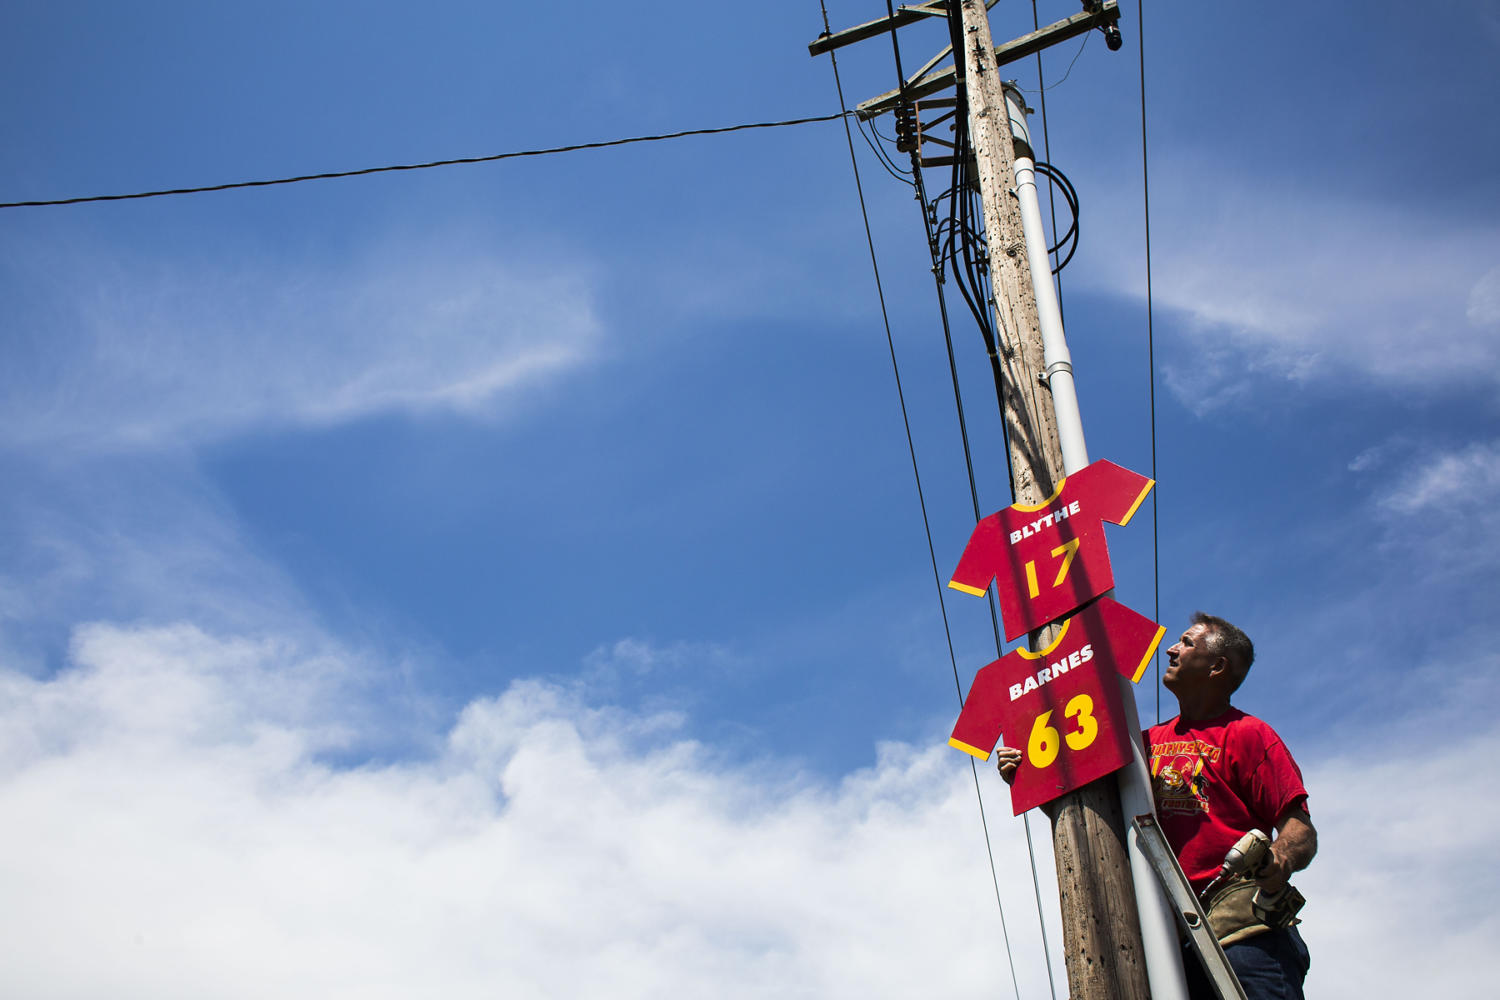 Mike Karg hangs Red Devils football jersey signs along North 14th Street prior to the 100th meeting between the Murphysboro Red Devils and the Carbondale Terriers on Friday, Aug. 25, 2017, in Murphysboro, Illinois. (Ryan Michalesko | @photosbylesko)